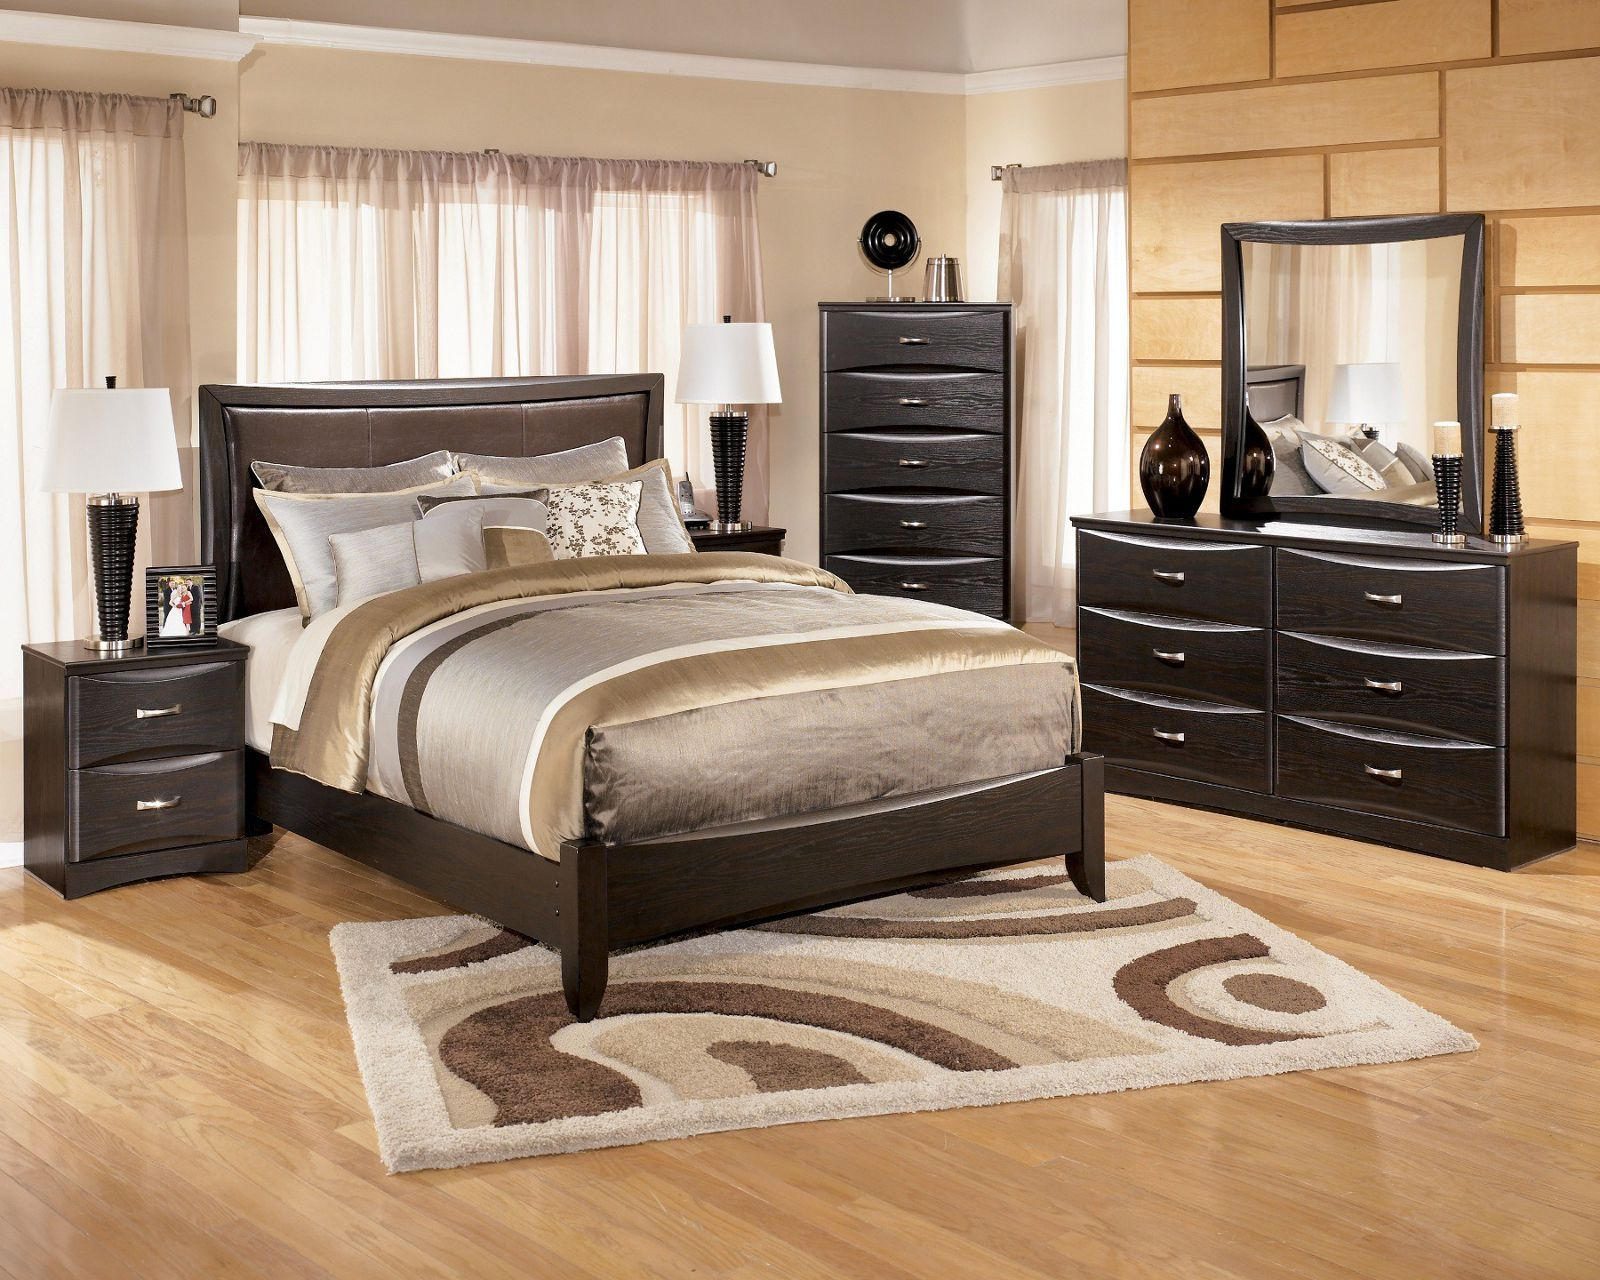 Ashley Furniture Ashley Furniture Maribel Panel Bedroom Set Queen Part 83